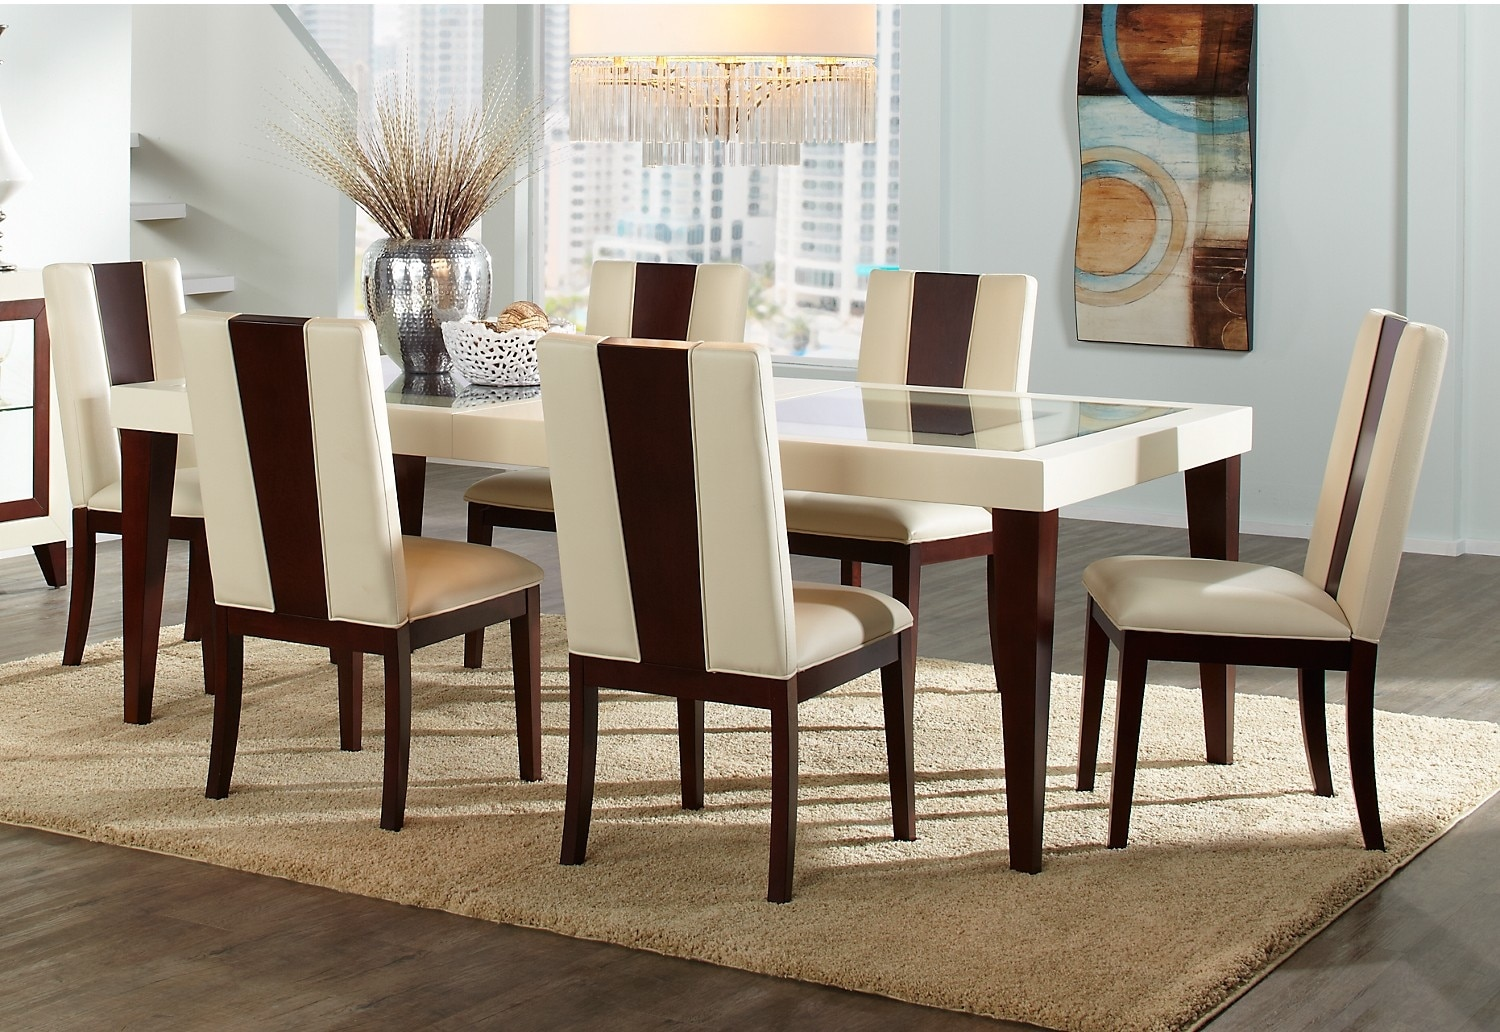 Zeno dining table the brick - Dining room table canada ...